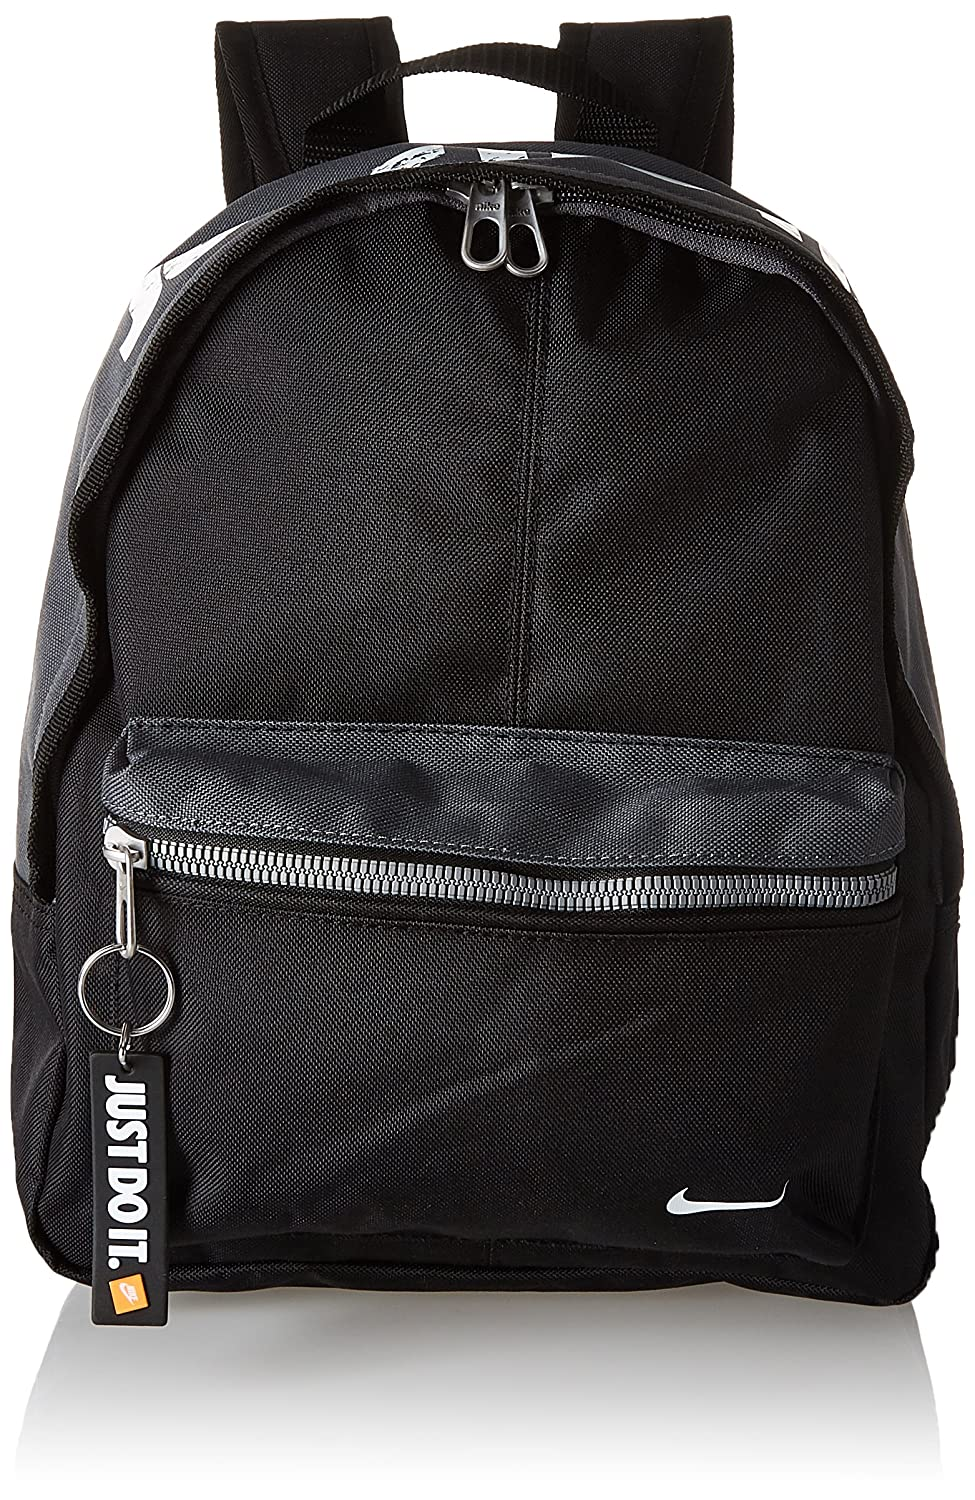 01c593d28b628 Amazon.com  Nike Kids  Classic Mini Backpack  Sports   Outdoors